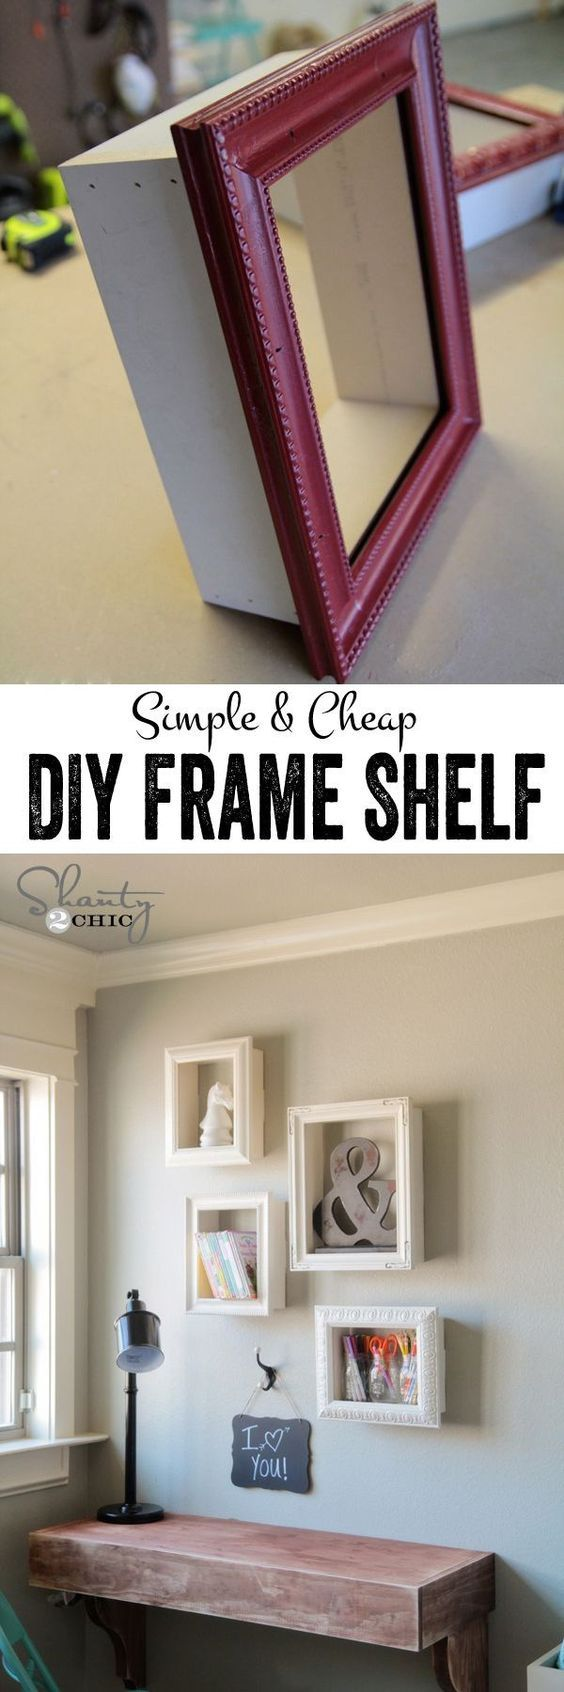 budget friendly diy home decor projects with tutorials - Home Decor For Cheap